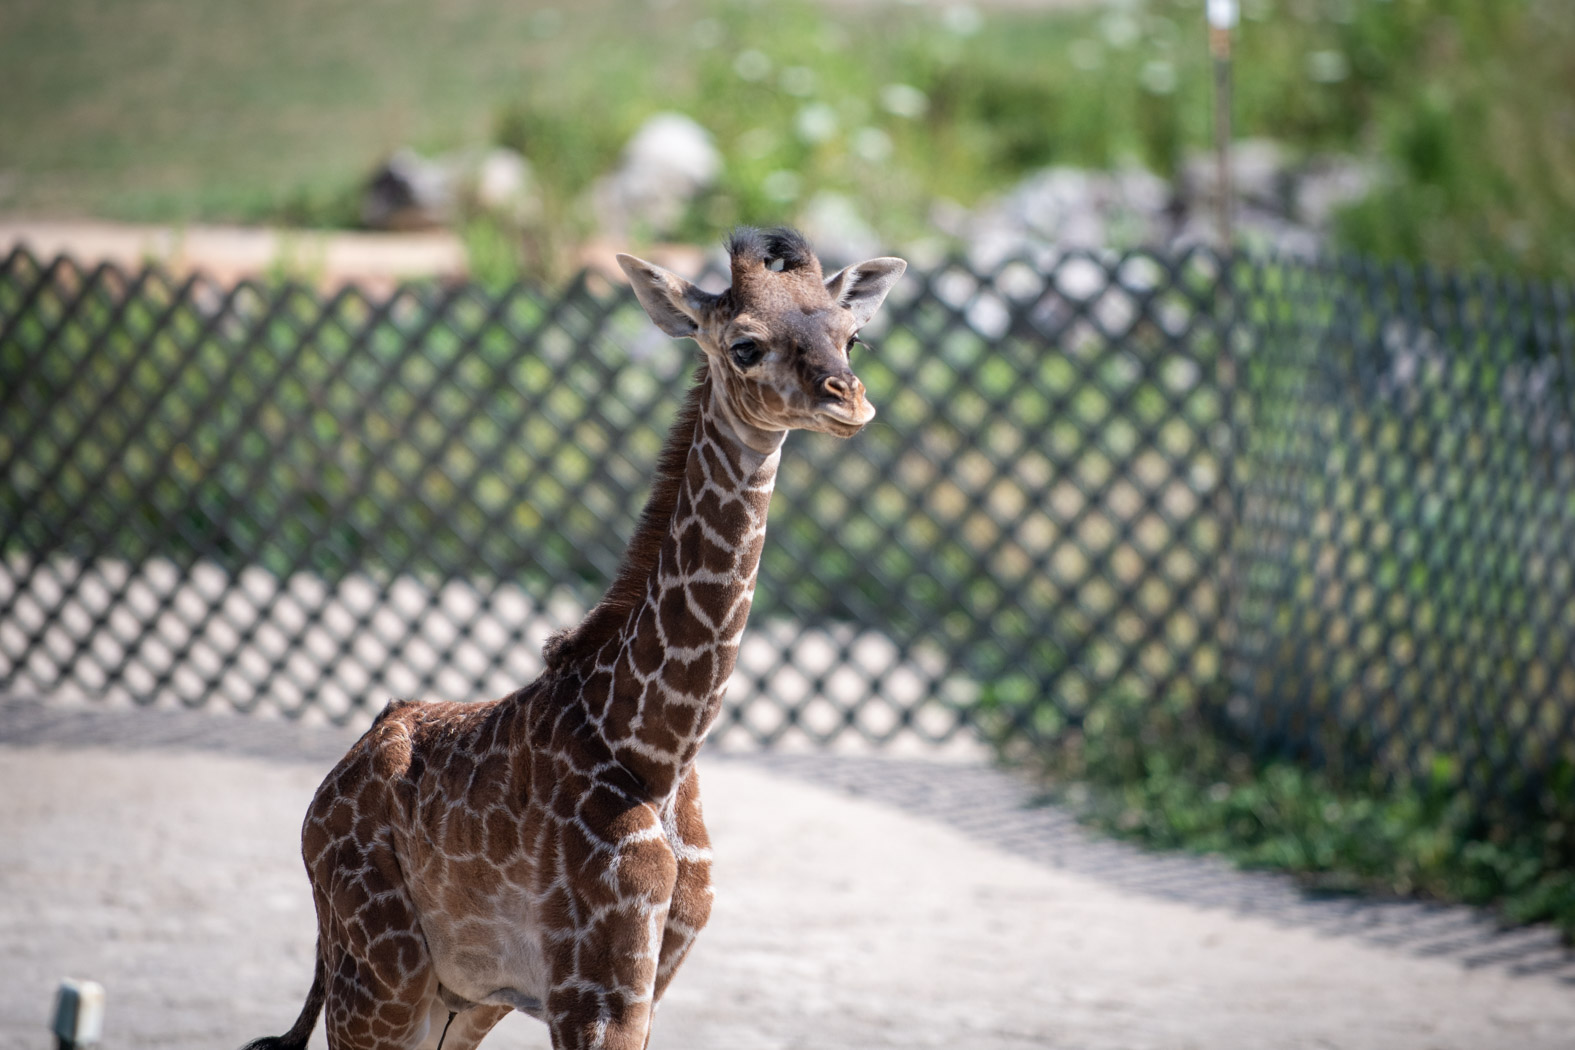 The Columbus Zoo and Aquarium said beginning Friday, Aug. 14, guests will have the chance to view the endangered male Masai giraffe that was born on June 28 to mother, Zuri and father, Enzi. (Columbus Zoo and Aquarium)